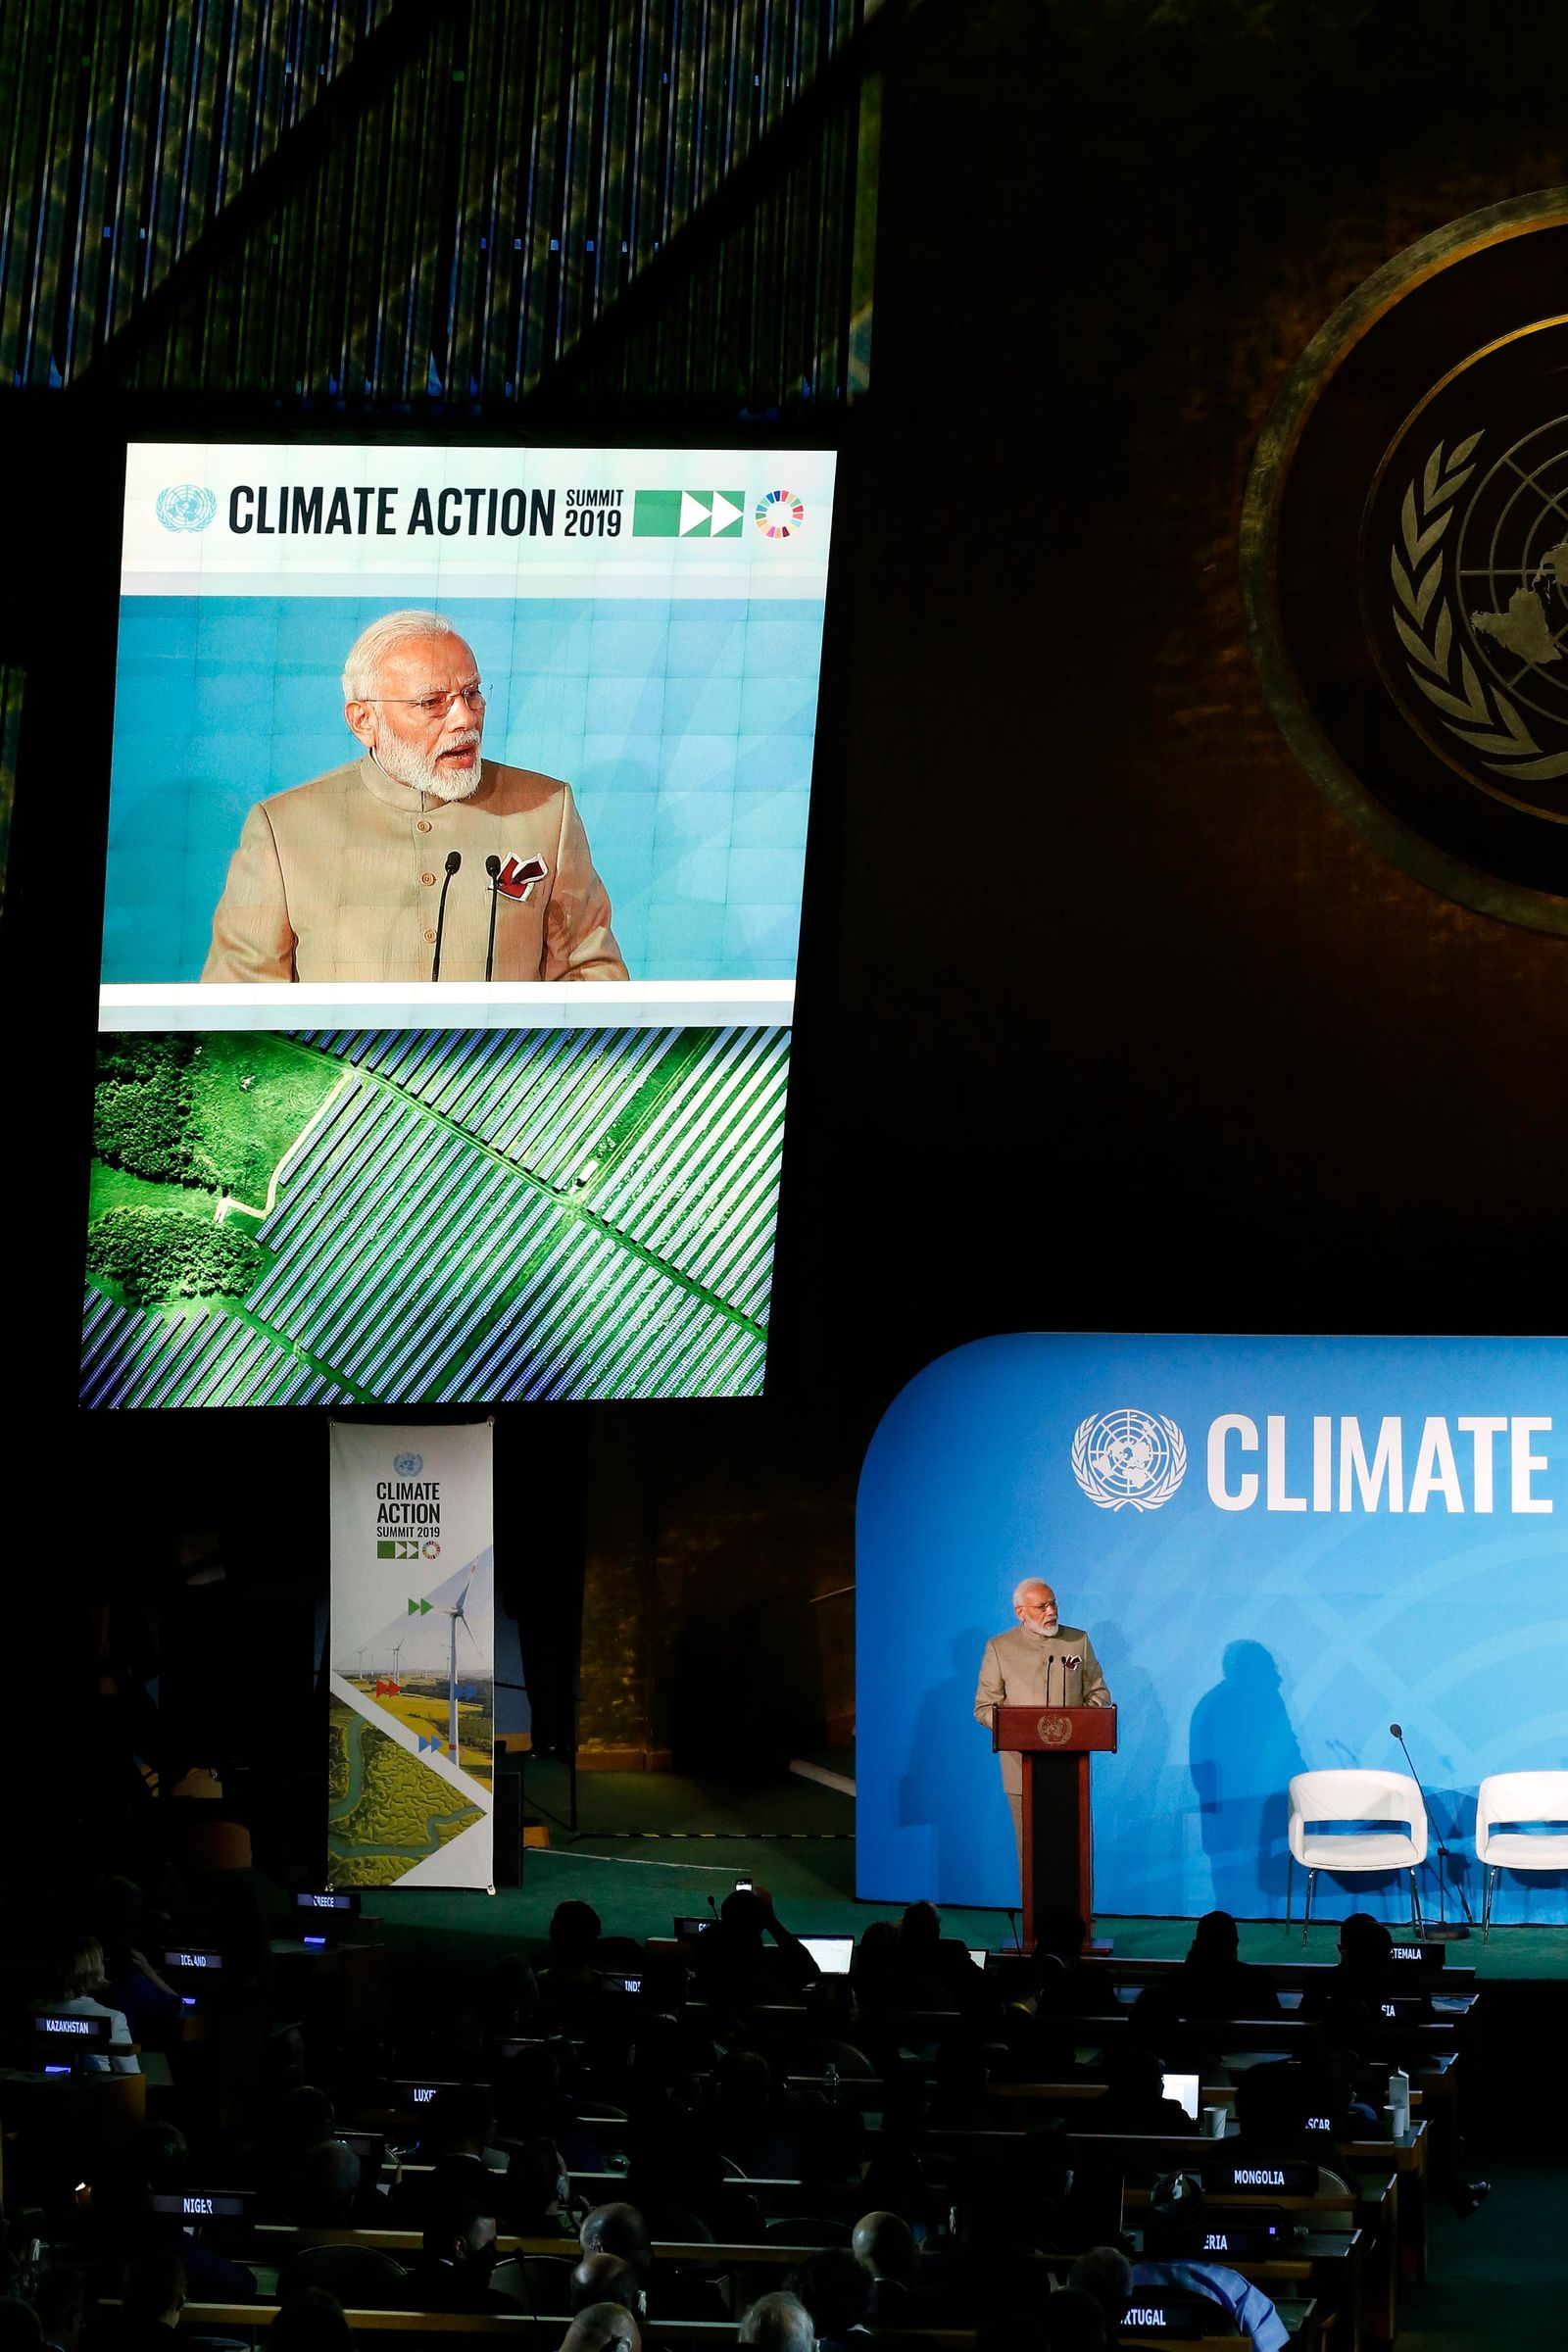 India's Prime Minister Narendra Modi addresses the Climate Action Summit in the United Nations General Assembly, at U.N. headquarters, Monday, Sept. 23, 2019. (AP Photo/Jason DeCrow)